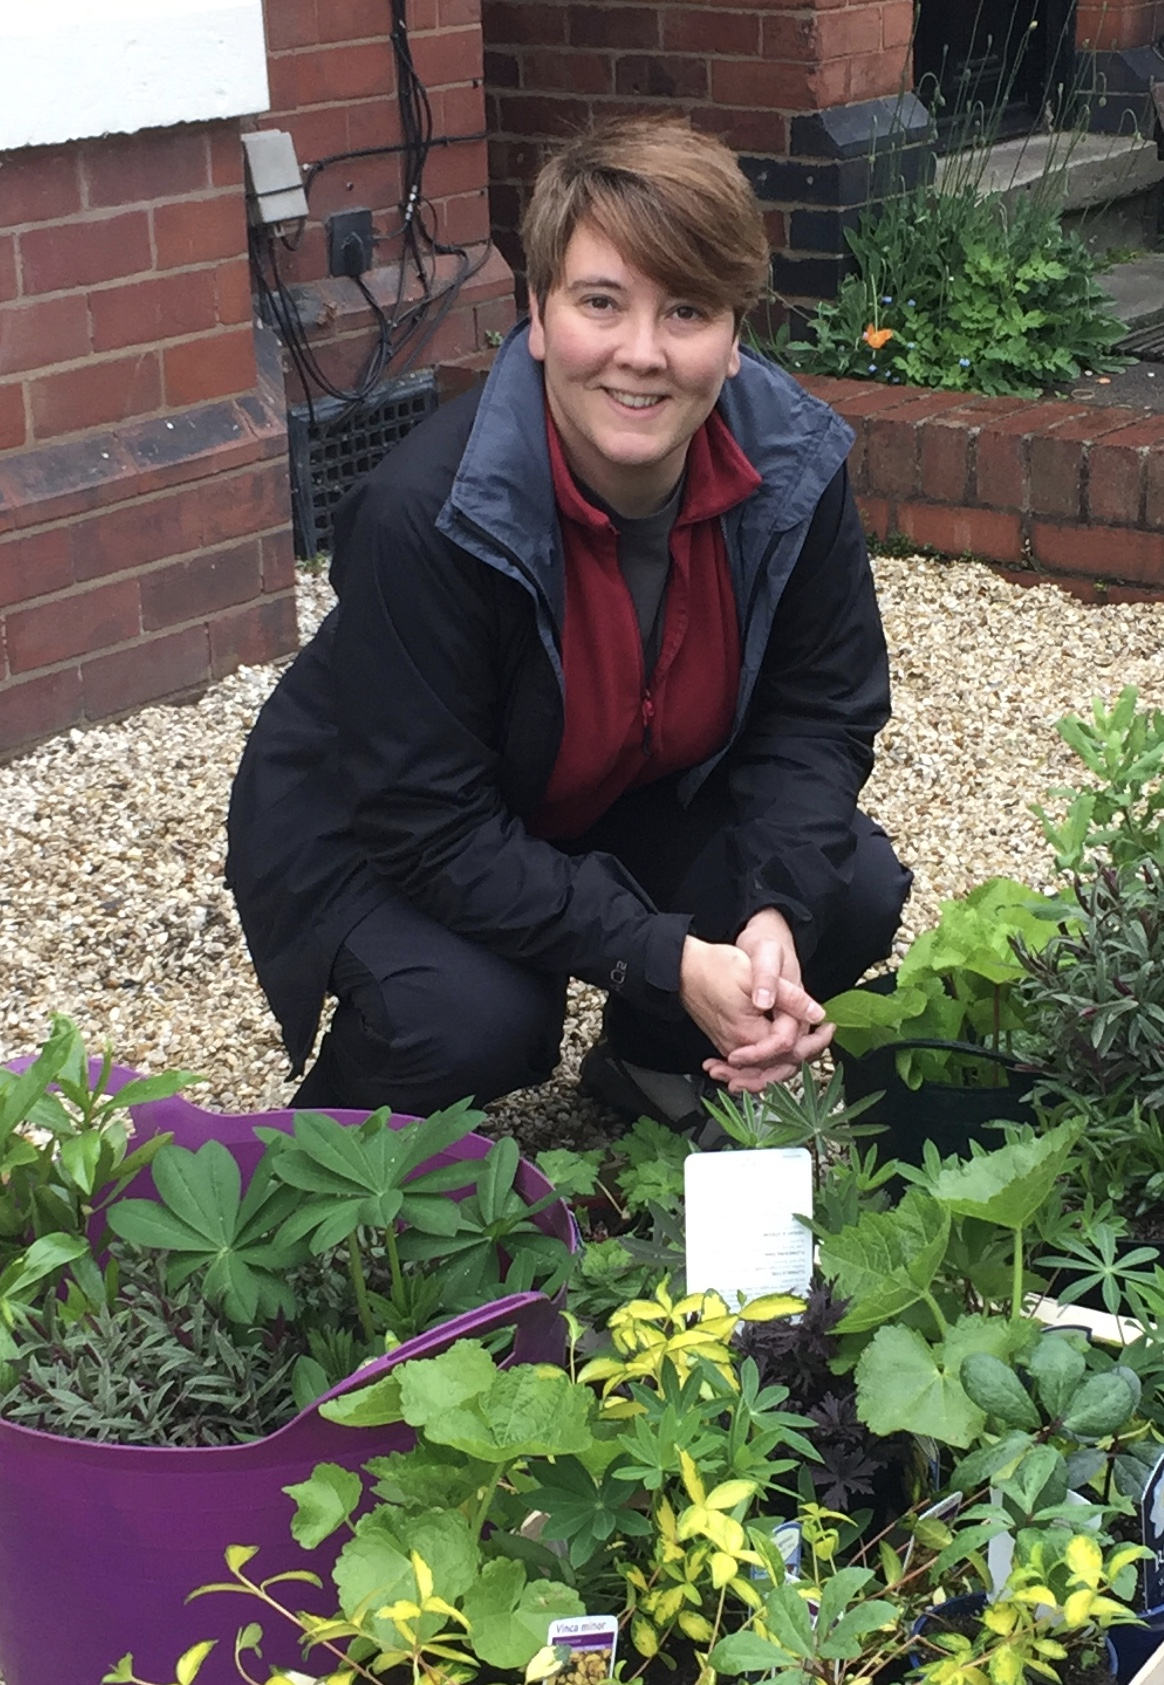 - I am a Self-employed, female Professional Gardener and Designer based in the West Midlands.I have the industry recognised RHS Level 2 Diploma in the Principles and Practices of Horticulture.I studied at Birmingham Botanical Gardens and have several years experience.I design, plant and enhance gardens and any outside space.I will treat your garden and plants as if they were my own;with respect, love and care.I am also an allotment'er' and foodie.Public Liability Insured.